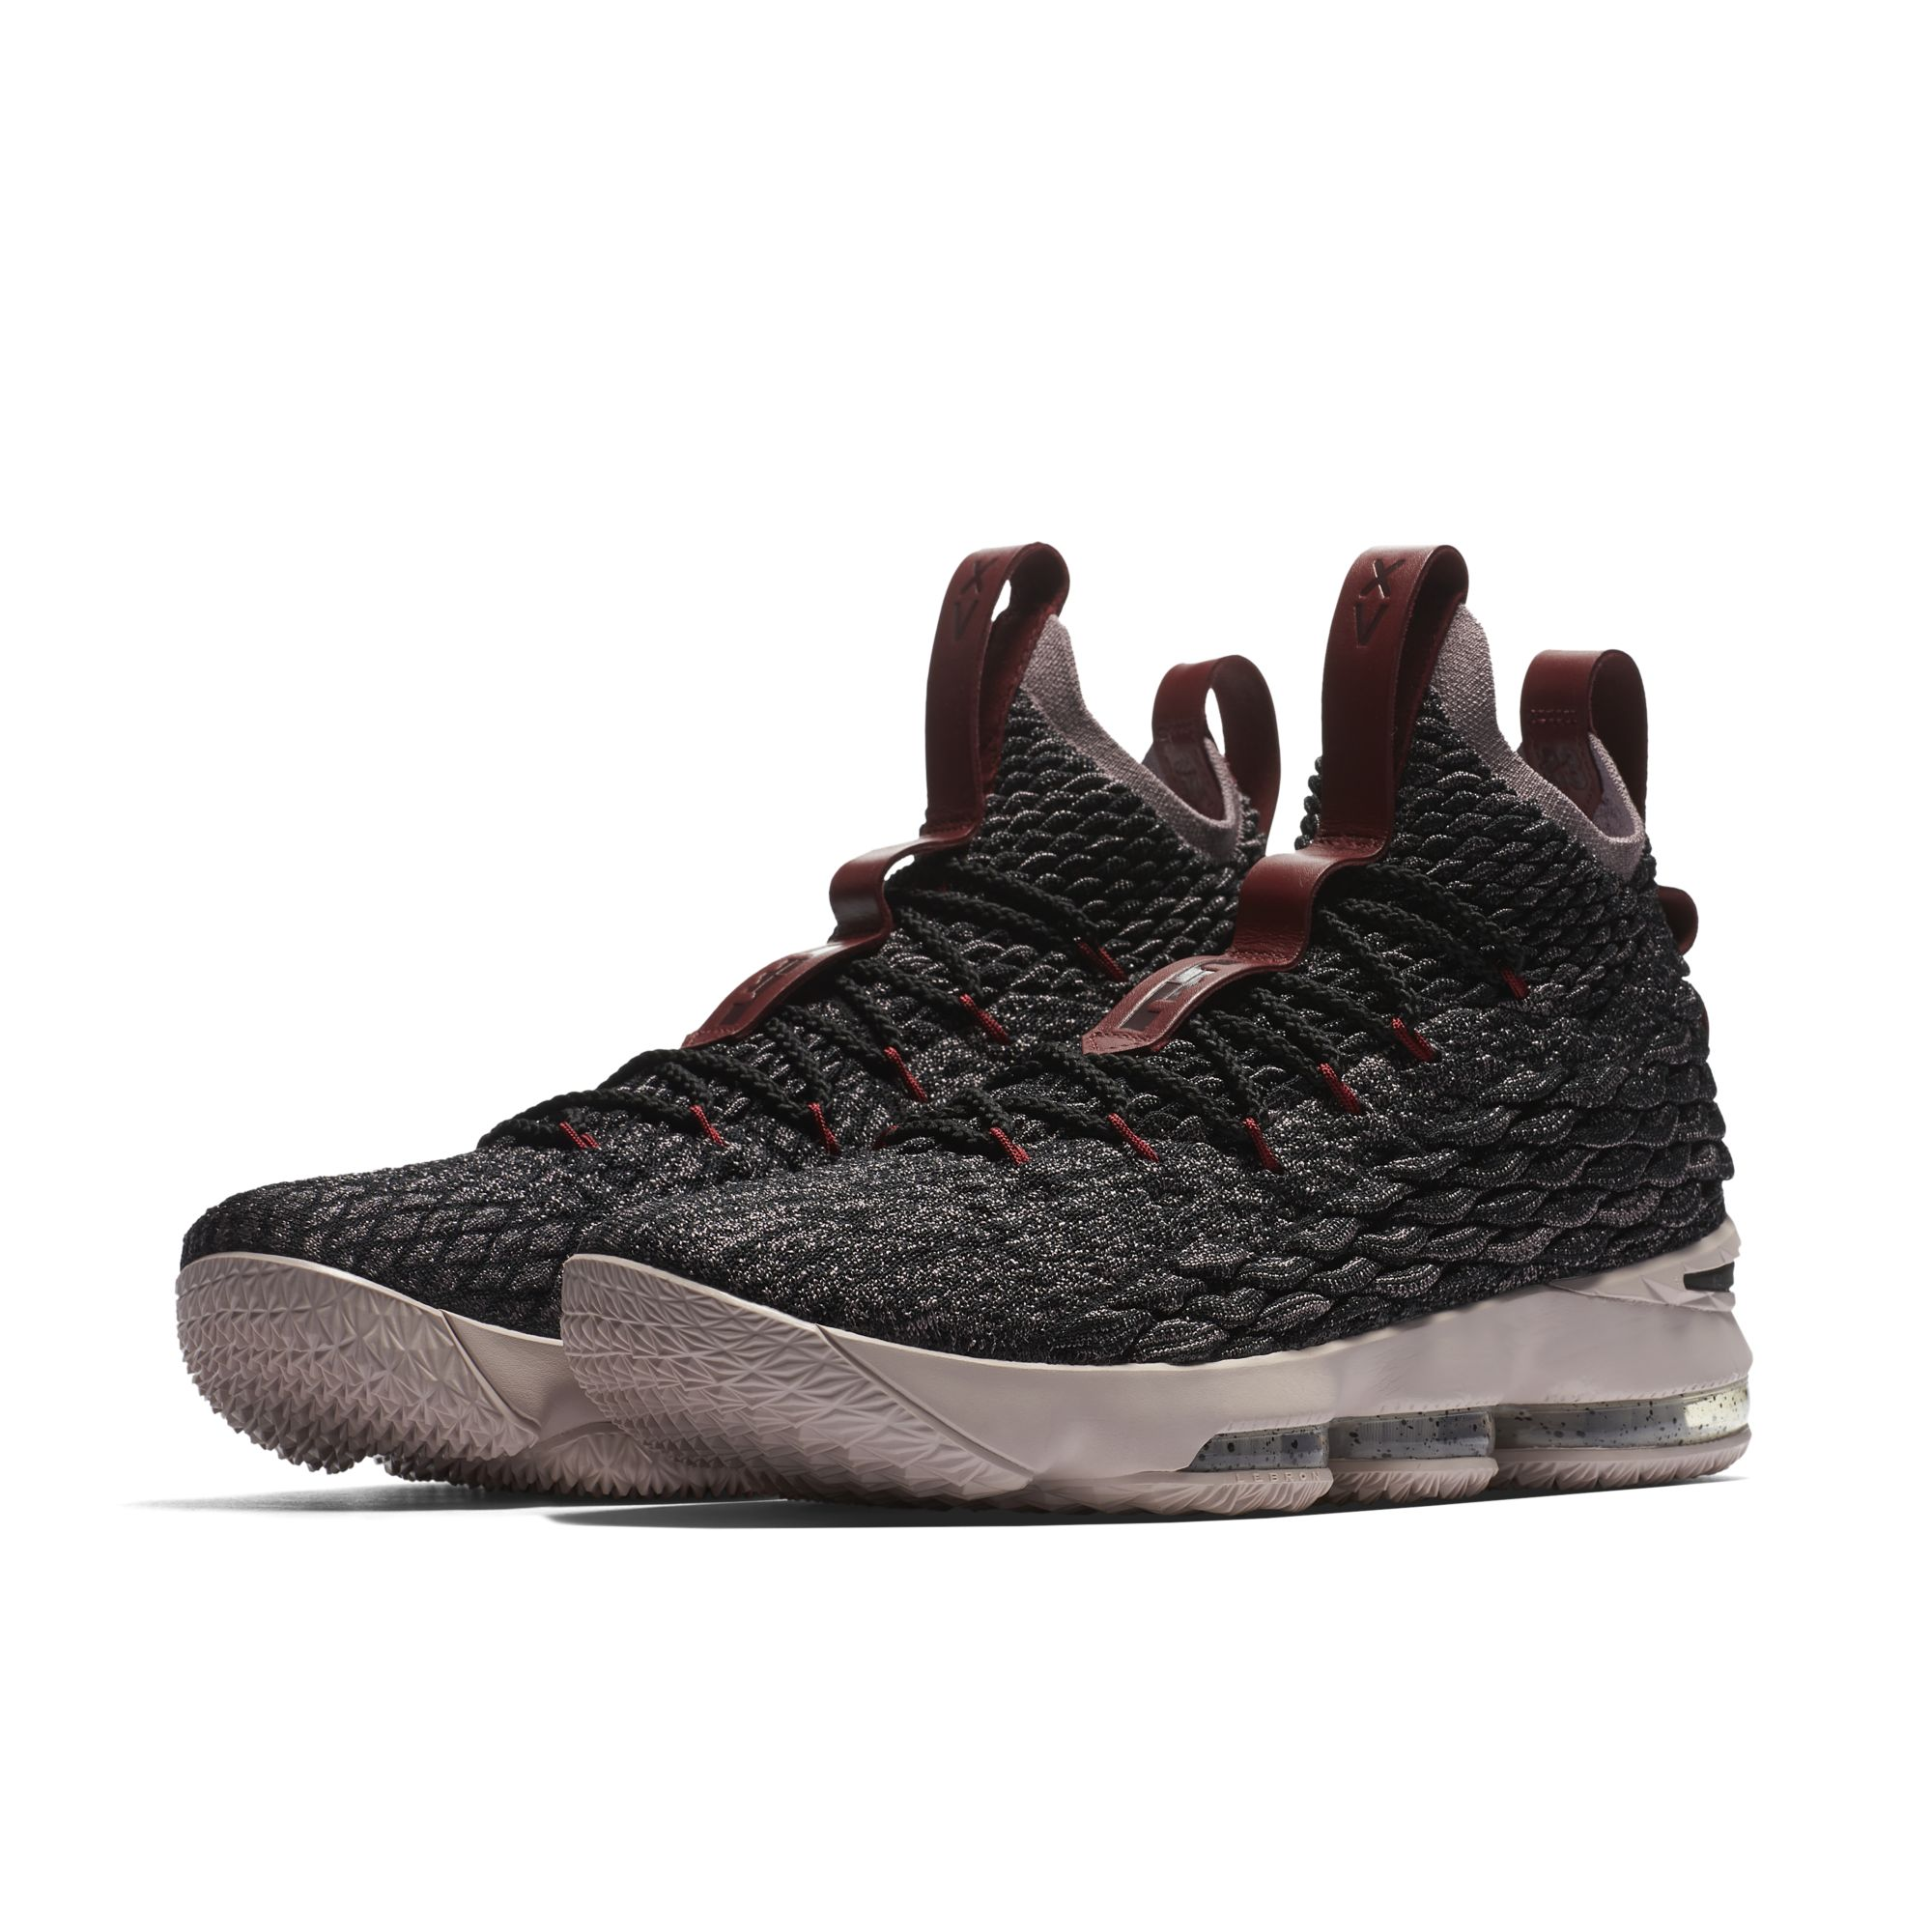 Nike-LeBron-15-Pride-of-Ohio-4